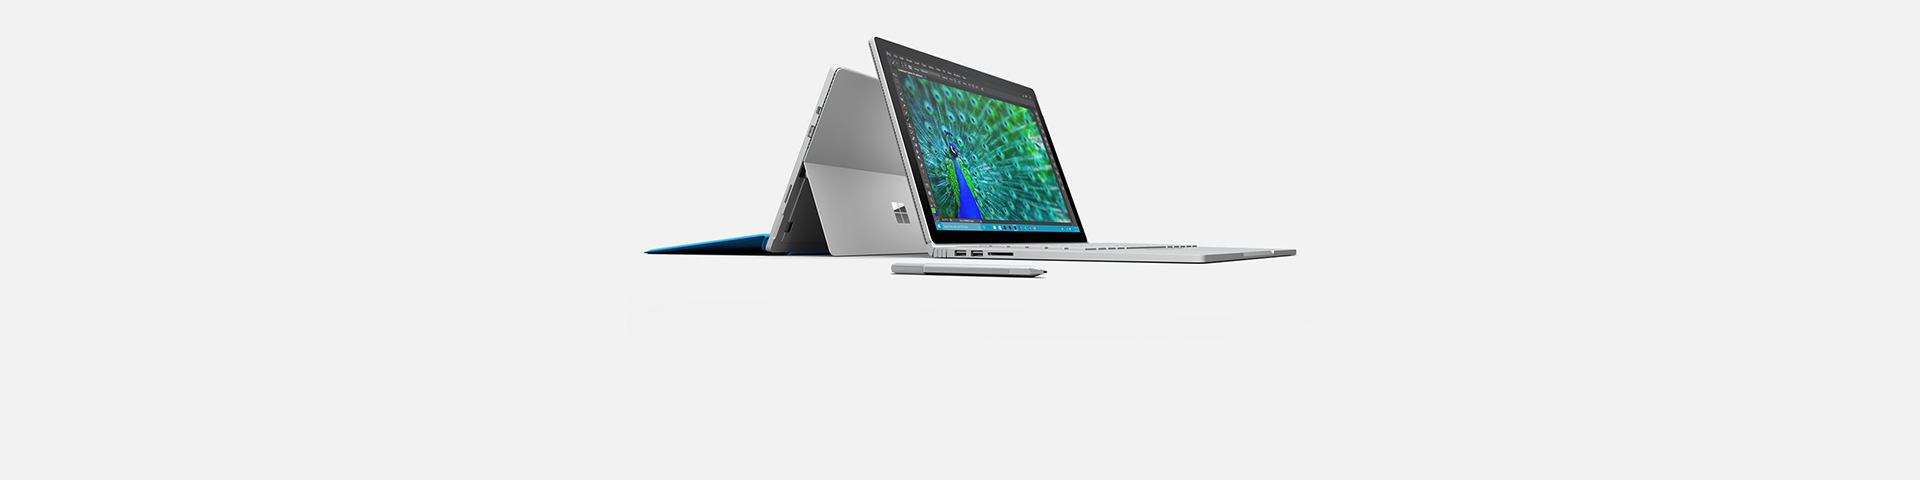 Surface devices, learn more